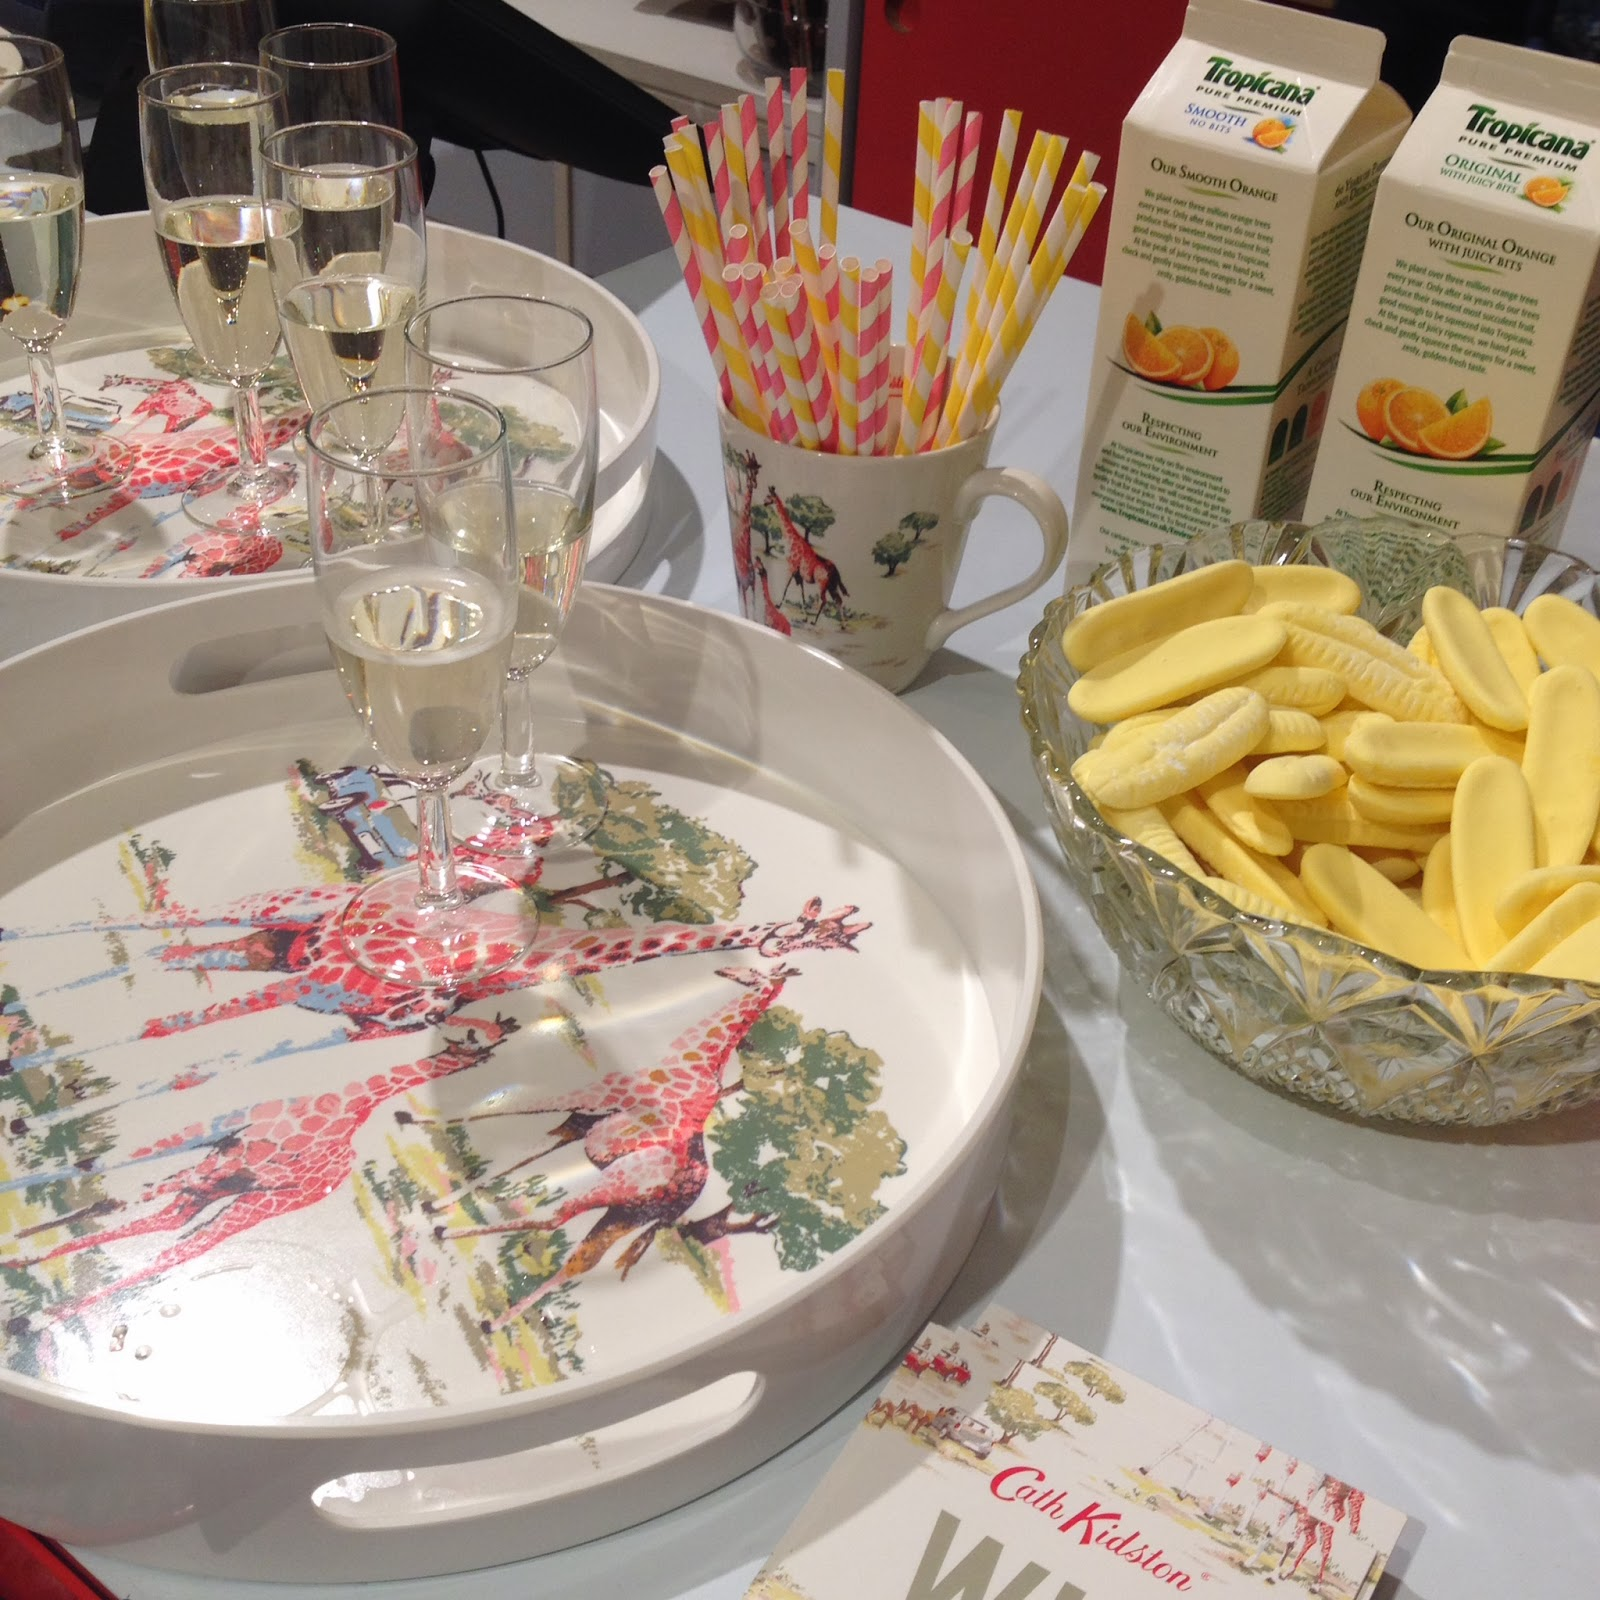 mamasVIB | V. I. BUSY BEES: Our 'wild' shopping spree at the Cath Kidston safari evening, V. I. BASH: Our 'wild' shopping spree at the Cath Kidston safari evening | Cath Kidston | safari print | shopping | fashion | safari party | 180 Piccadilly | giraffes | cath kids | vintage print | london | store | the ritz | the wolseley | fortmun and mason | shopping iwht mummy | competition | woburn safari park | safari animals | mamasVIb | blog | mummy bloggers | night out | shopping evening at cath kids ton |